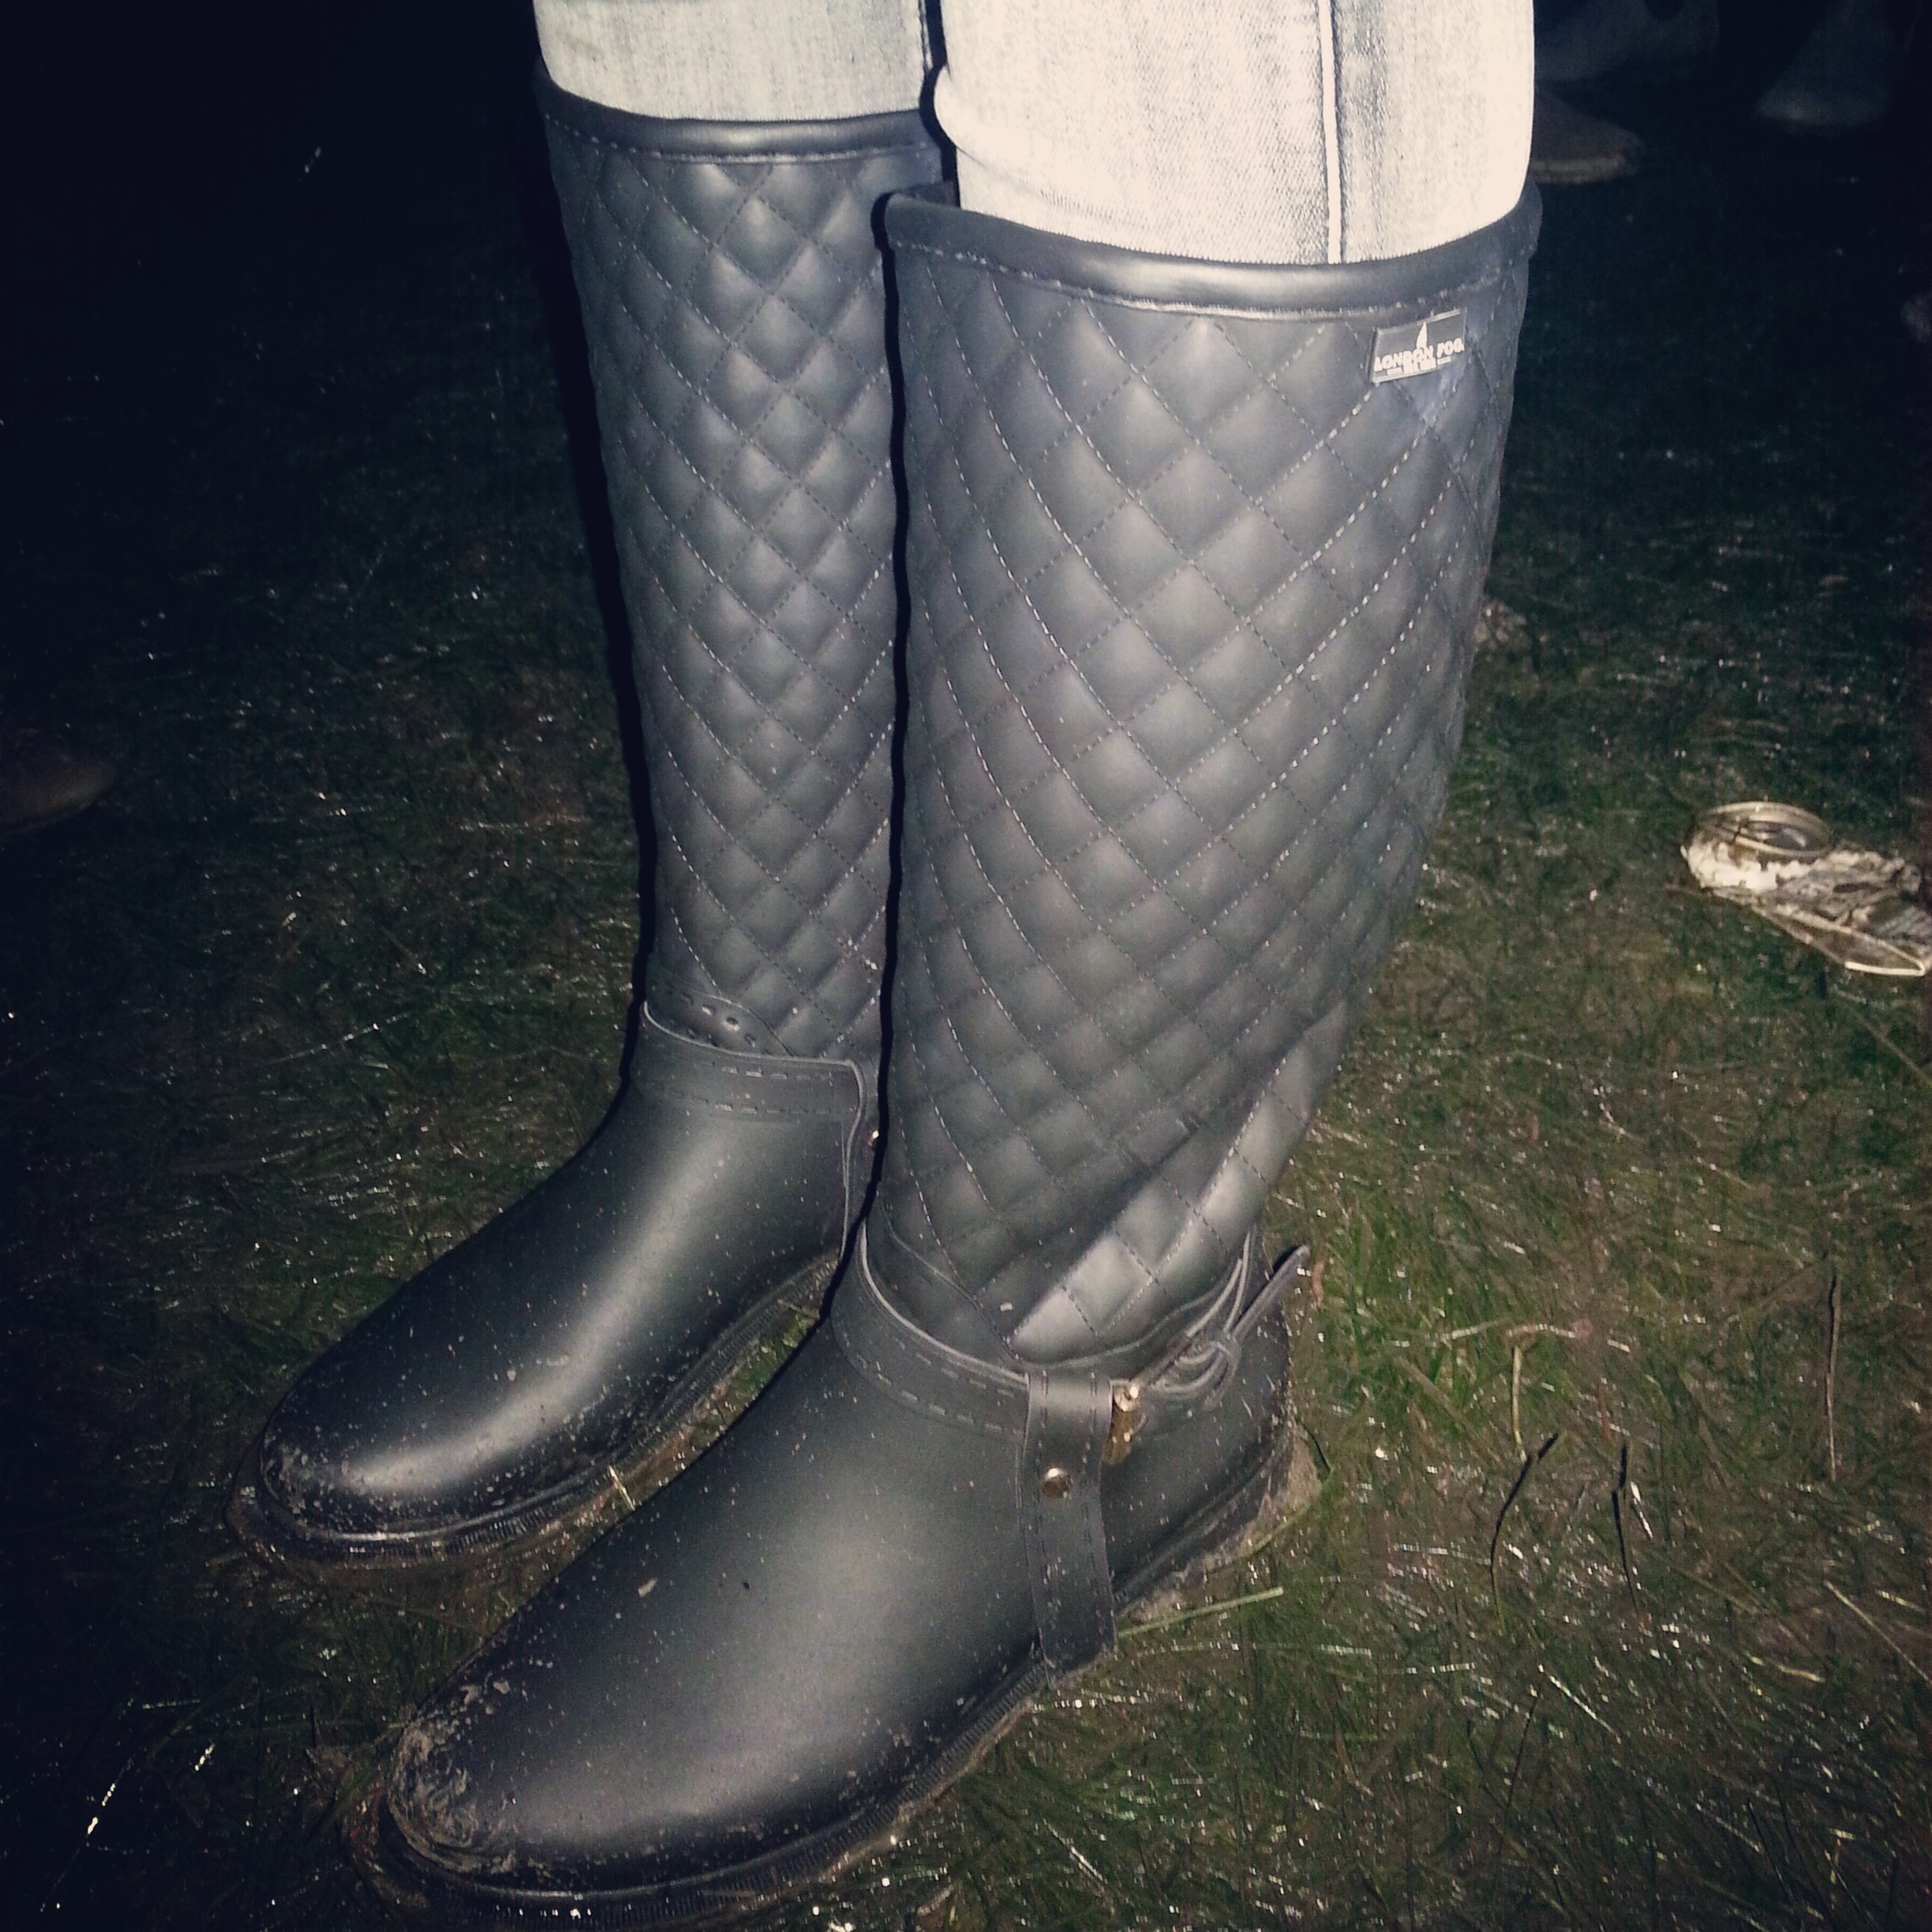 Although in terms of chic factor, my girl Kimberly's London Fogs were the winners. They don't even look like rubber boots-- the only reason I knew was because we'd been boot shopping together.